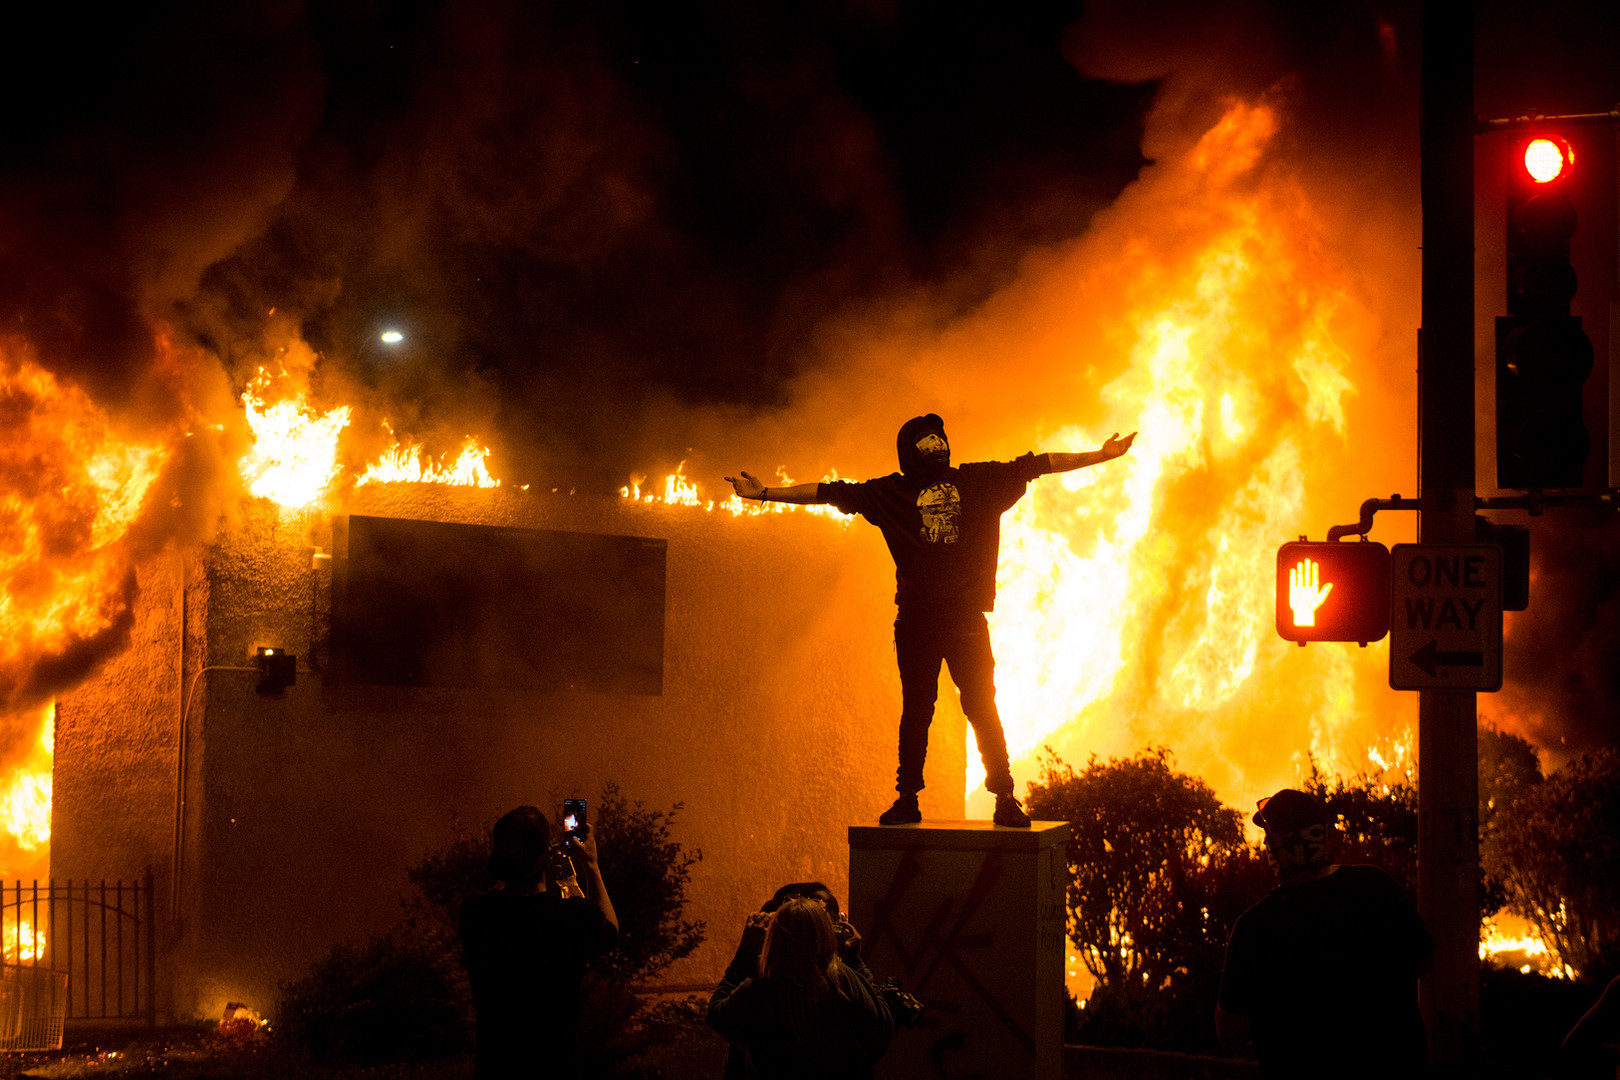 Photos are posed for in front of a burning building as part of riots near the 5th precinct in Minneapolis on Friday, May 29.